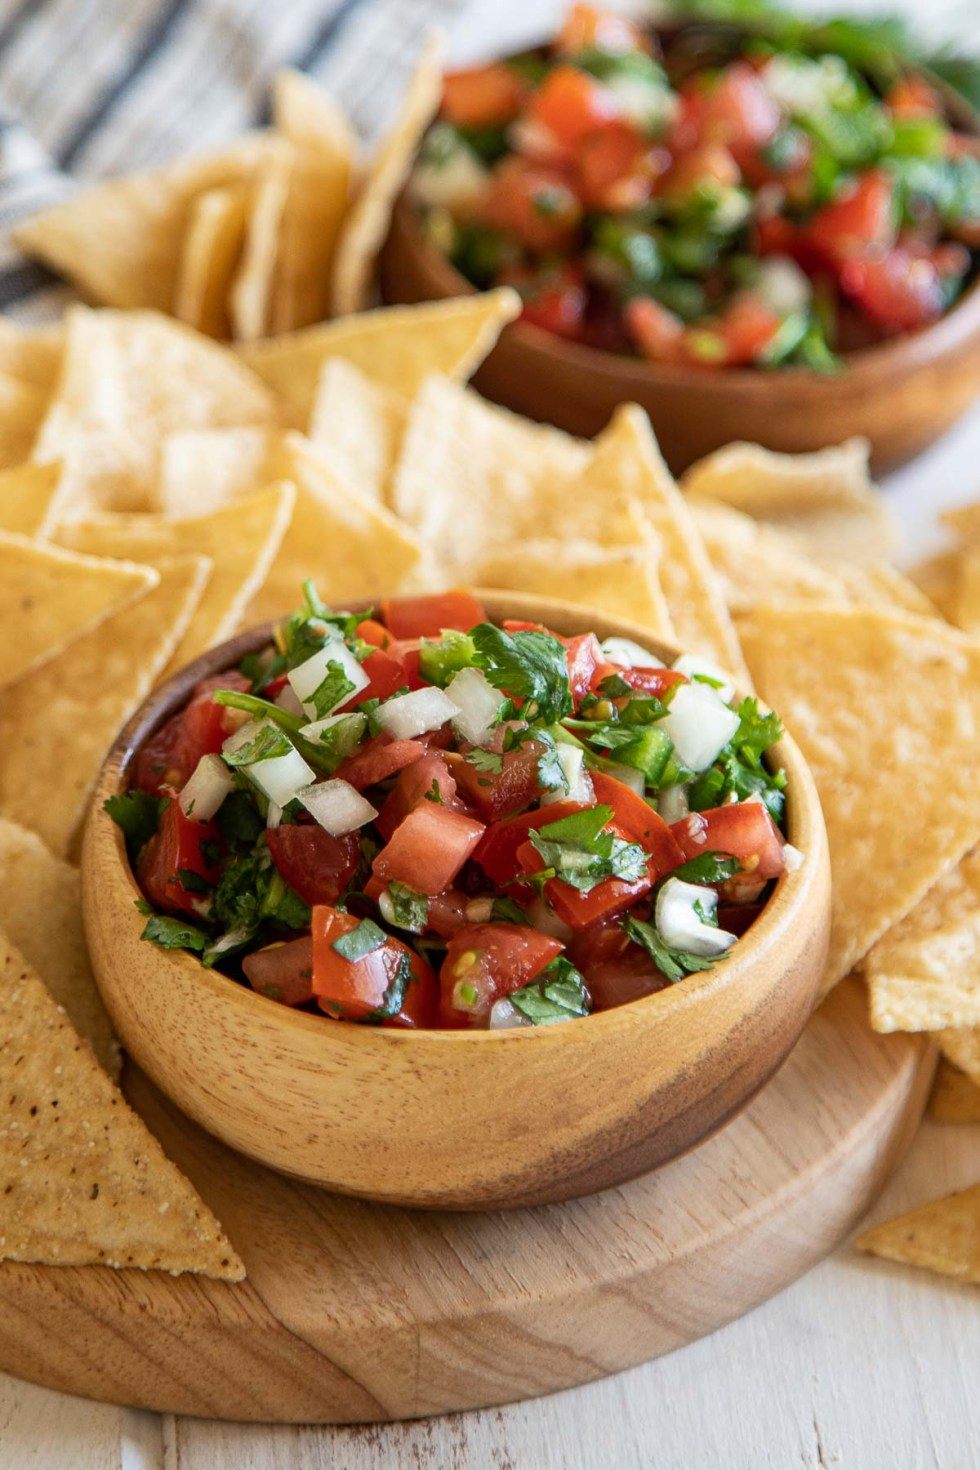 Homemade Pico de Gallo in Small Wooden Bowl with Chips